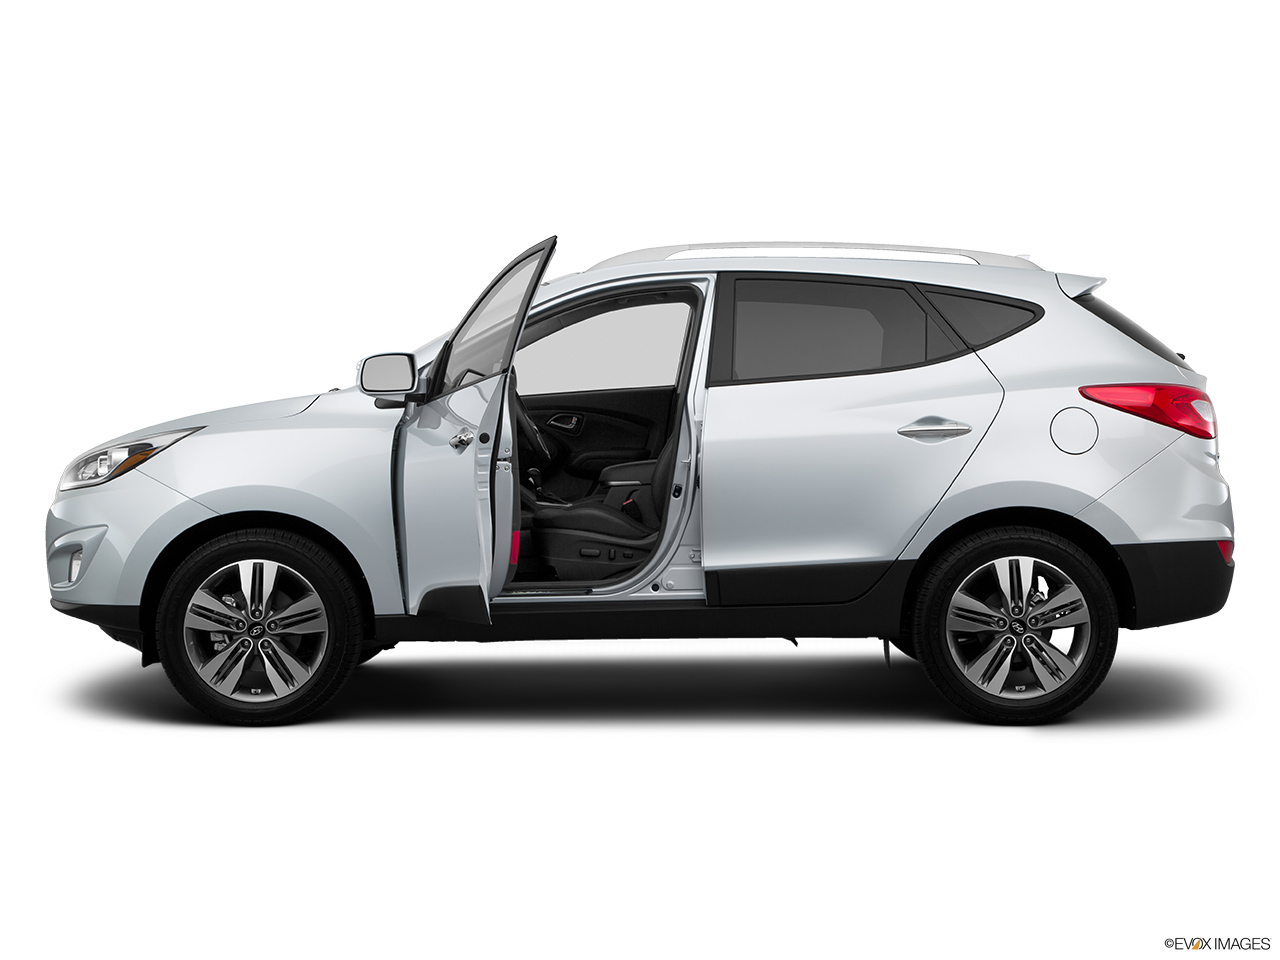 2015 Hyundai Tucson AWD 4 Door Limited - Driveru0027s side profile with drivers side door open  sc 1 st  CarNow : door technology tucson - pezcame.com